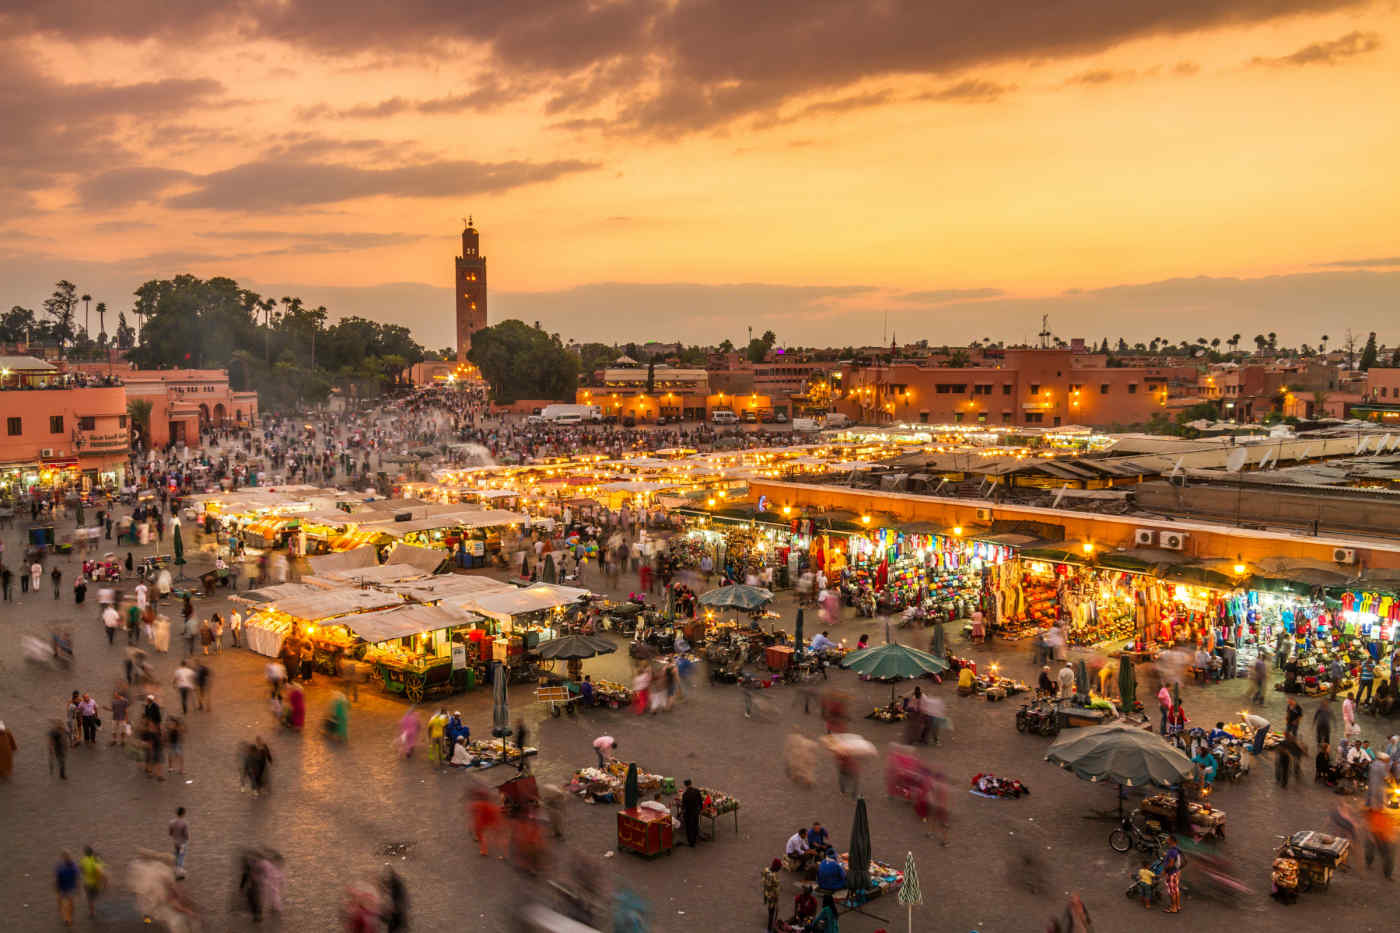 Market in Marrakesh, Morocco